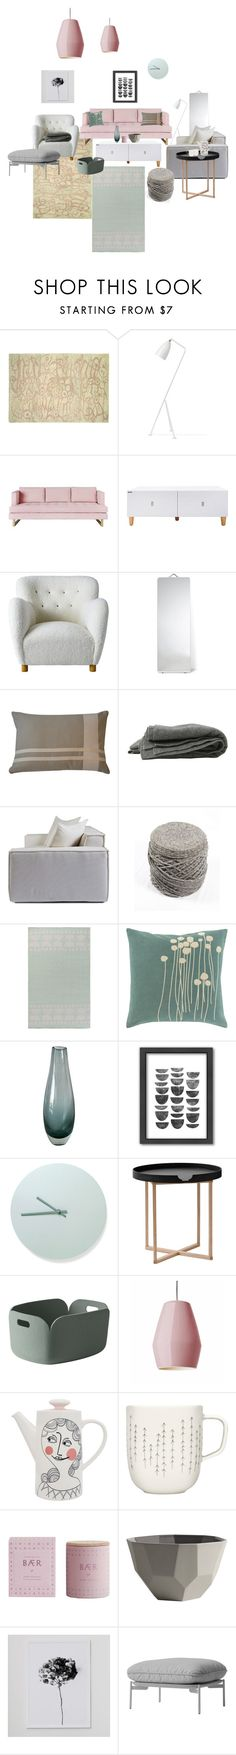 """search results for scandinavian"" by meetminion ❤ liked on Polyvore featuring interior, interiors, interior design, home, home decor, interior decorating, Nalbandian, Gubi, Gus* Modern and Braddock"